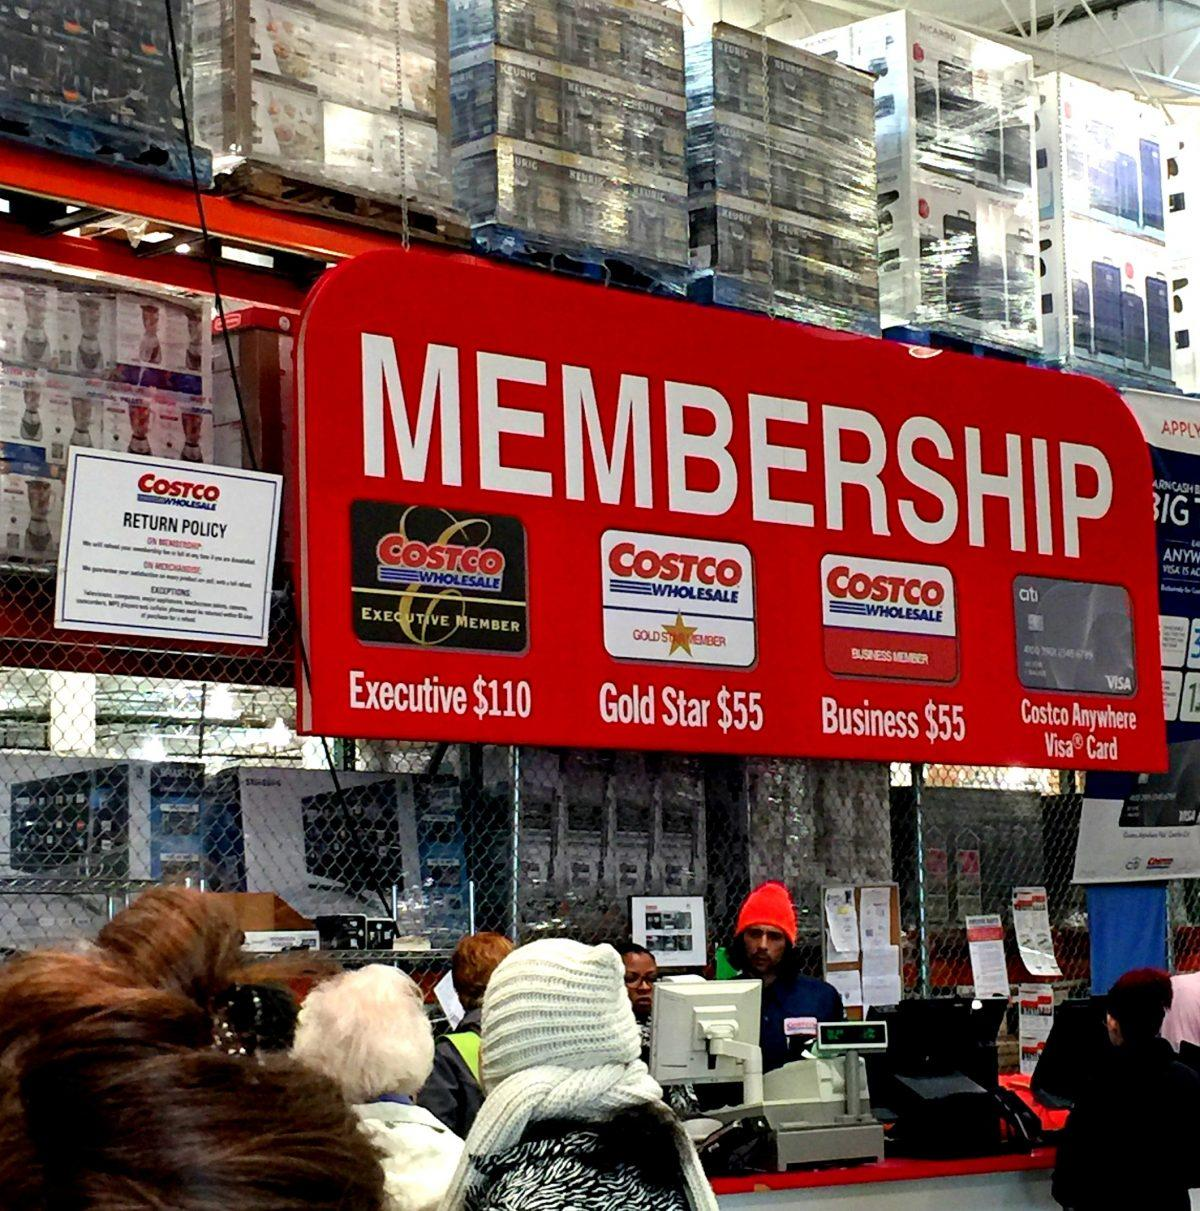 Costco Stock Takes 6 Percent Hit on Minor Dip in Membership Renewal ...